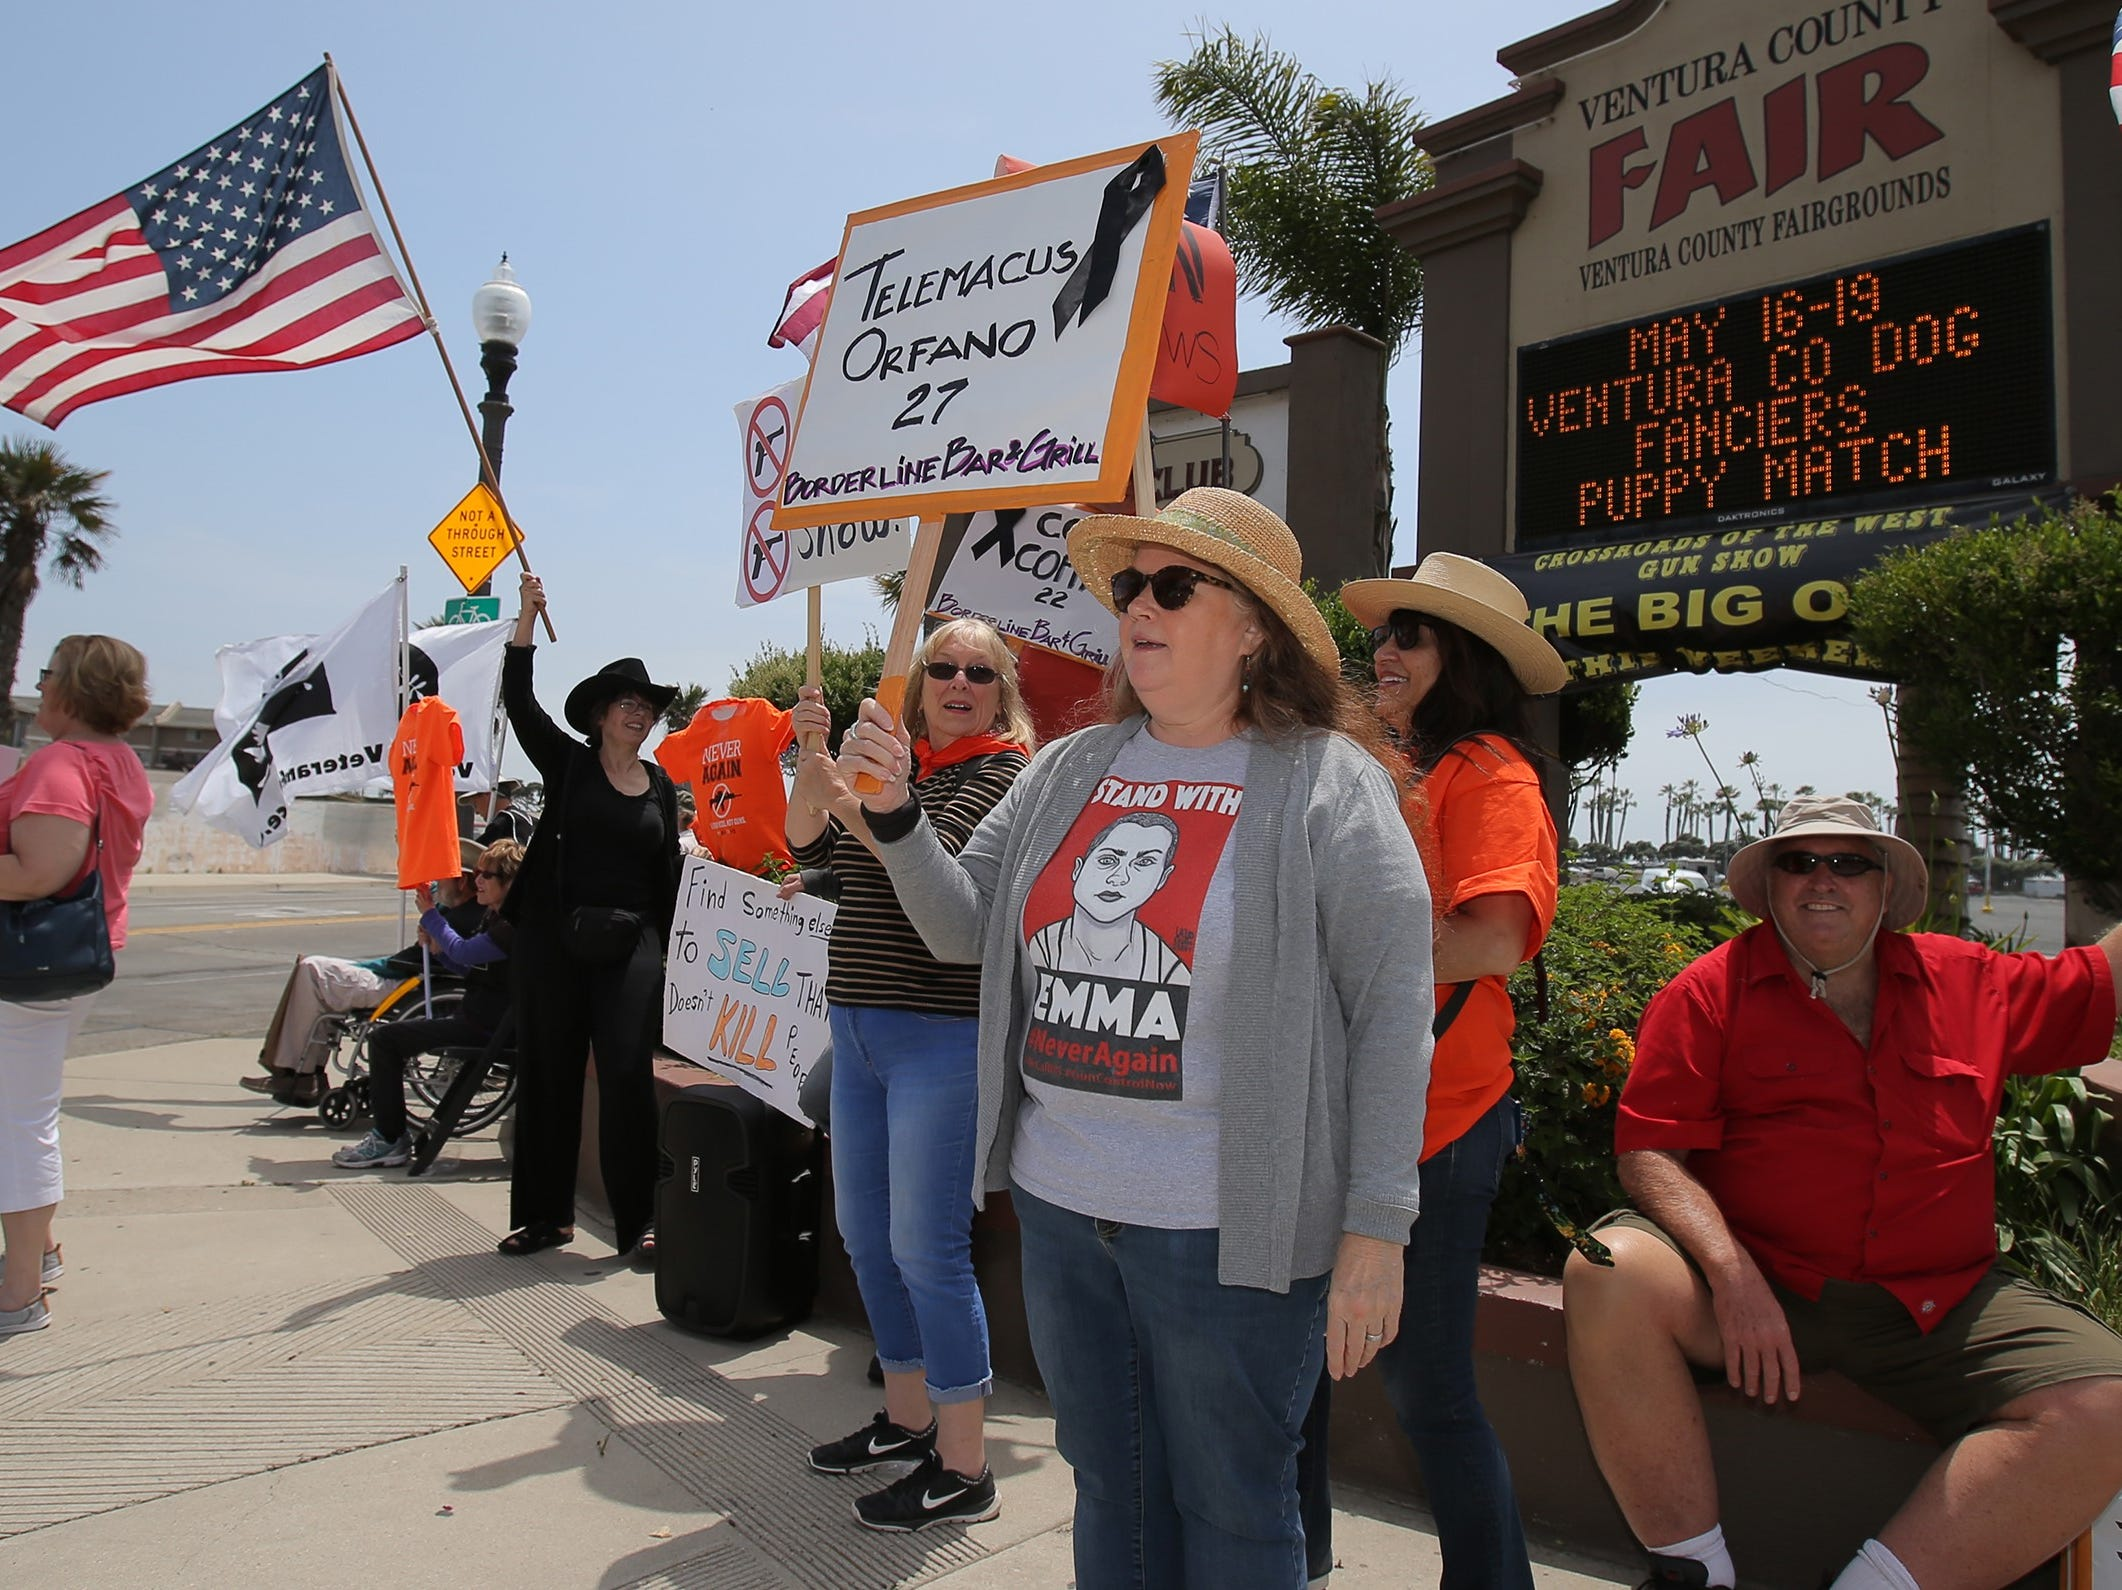 Troy Corley, in gray sweater, and her fellow gun-control advocates protest at the Crossroads of the West Gun Show on Saturday at the Ventura County Fairgrounds. They want the fairgrounds to stop hosting the gun show.